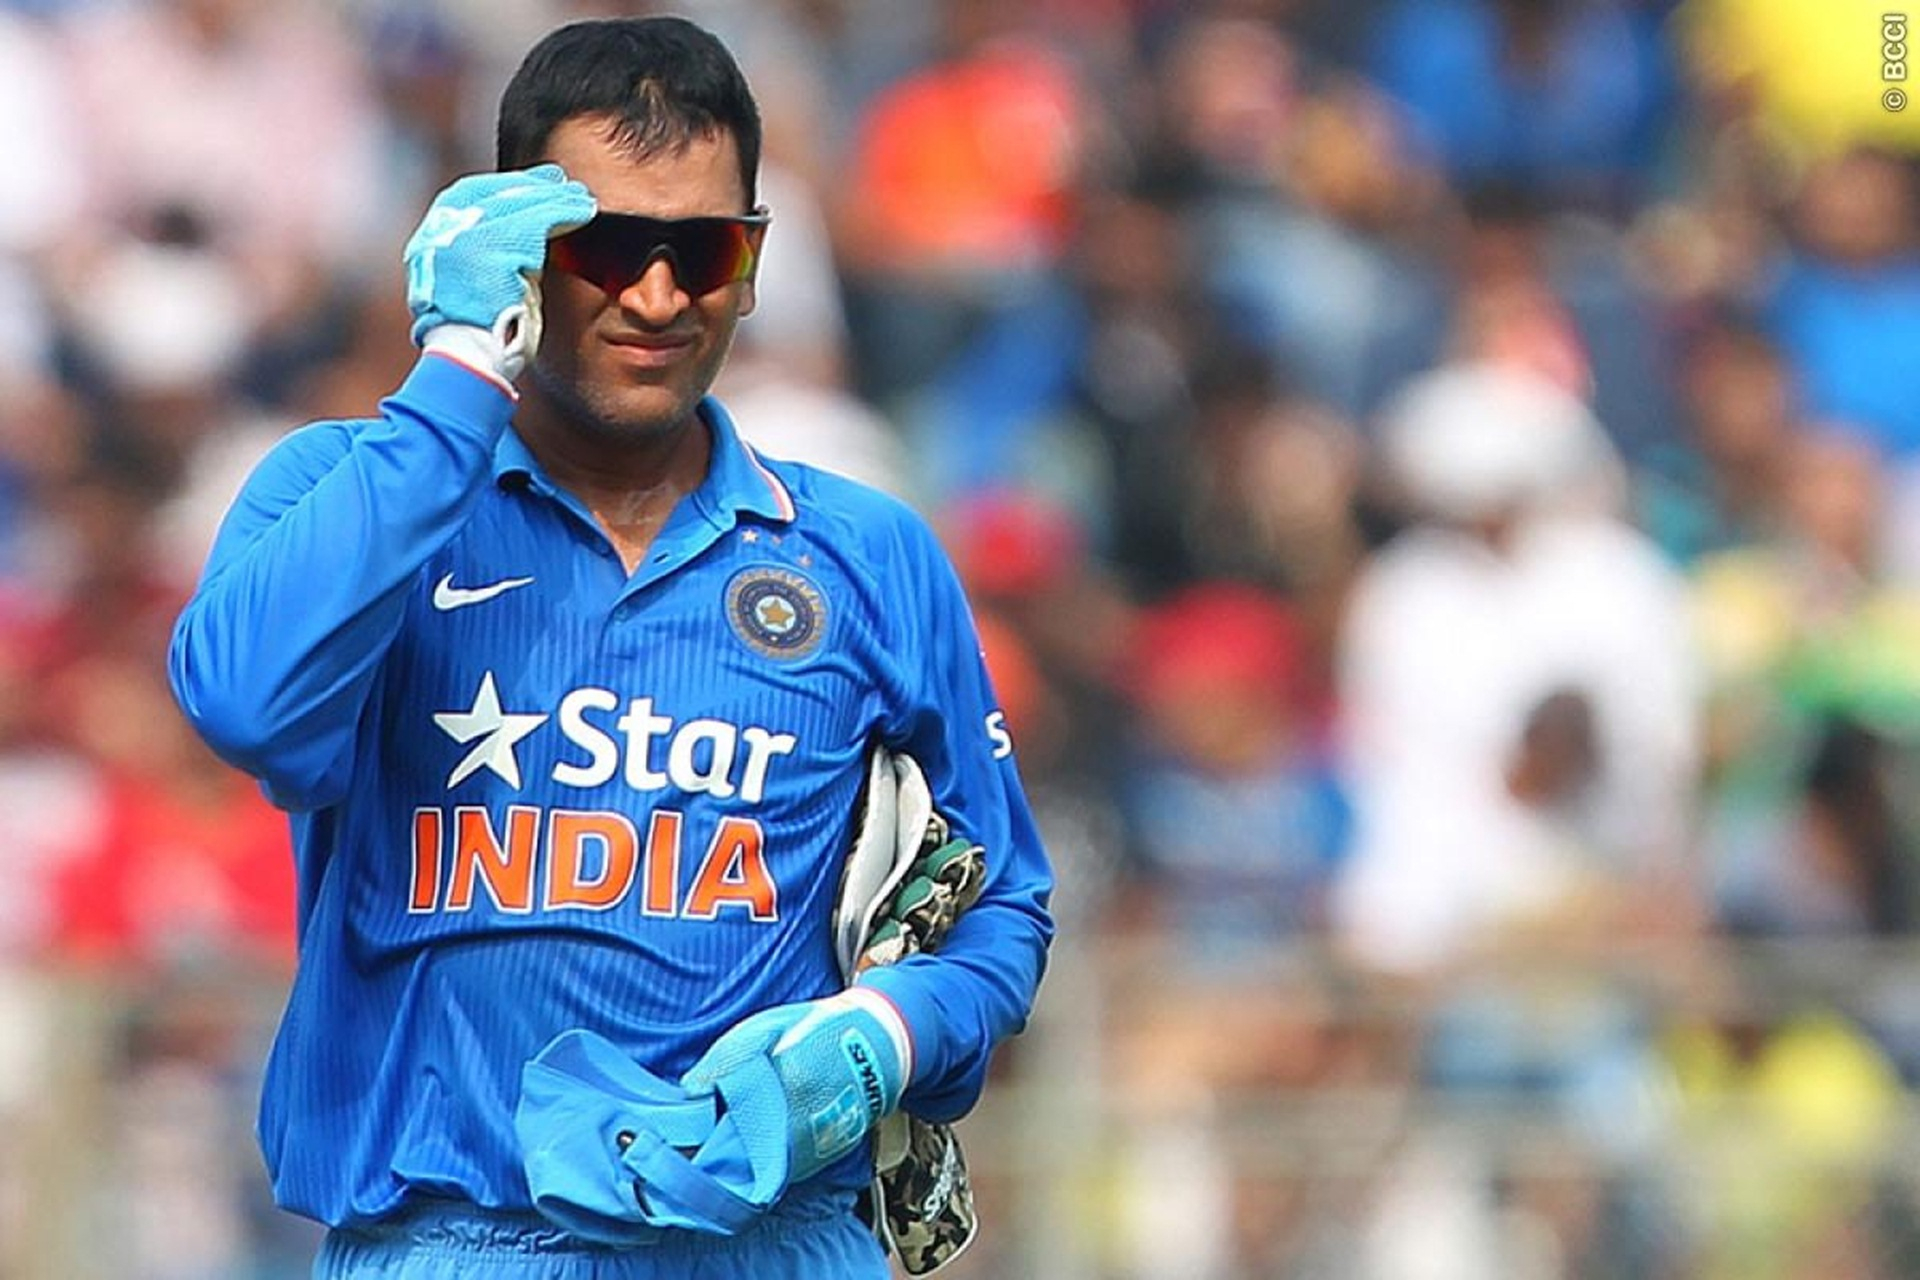 New Ms Dhoni Hd Wallpaper Download High Definition Ultra Hd Dhoni Hd 621784 Hd Wallpaper Backgrounds Download